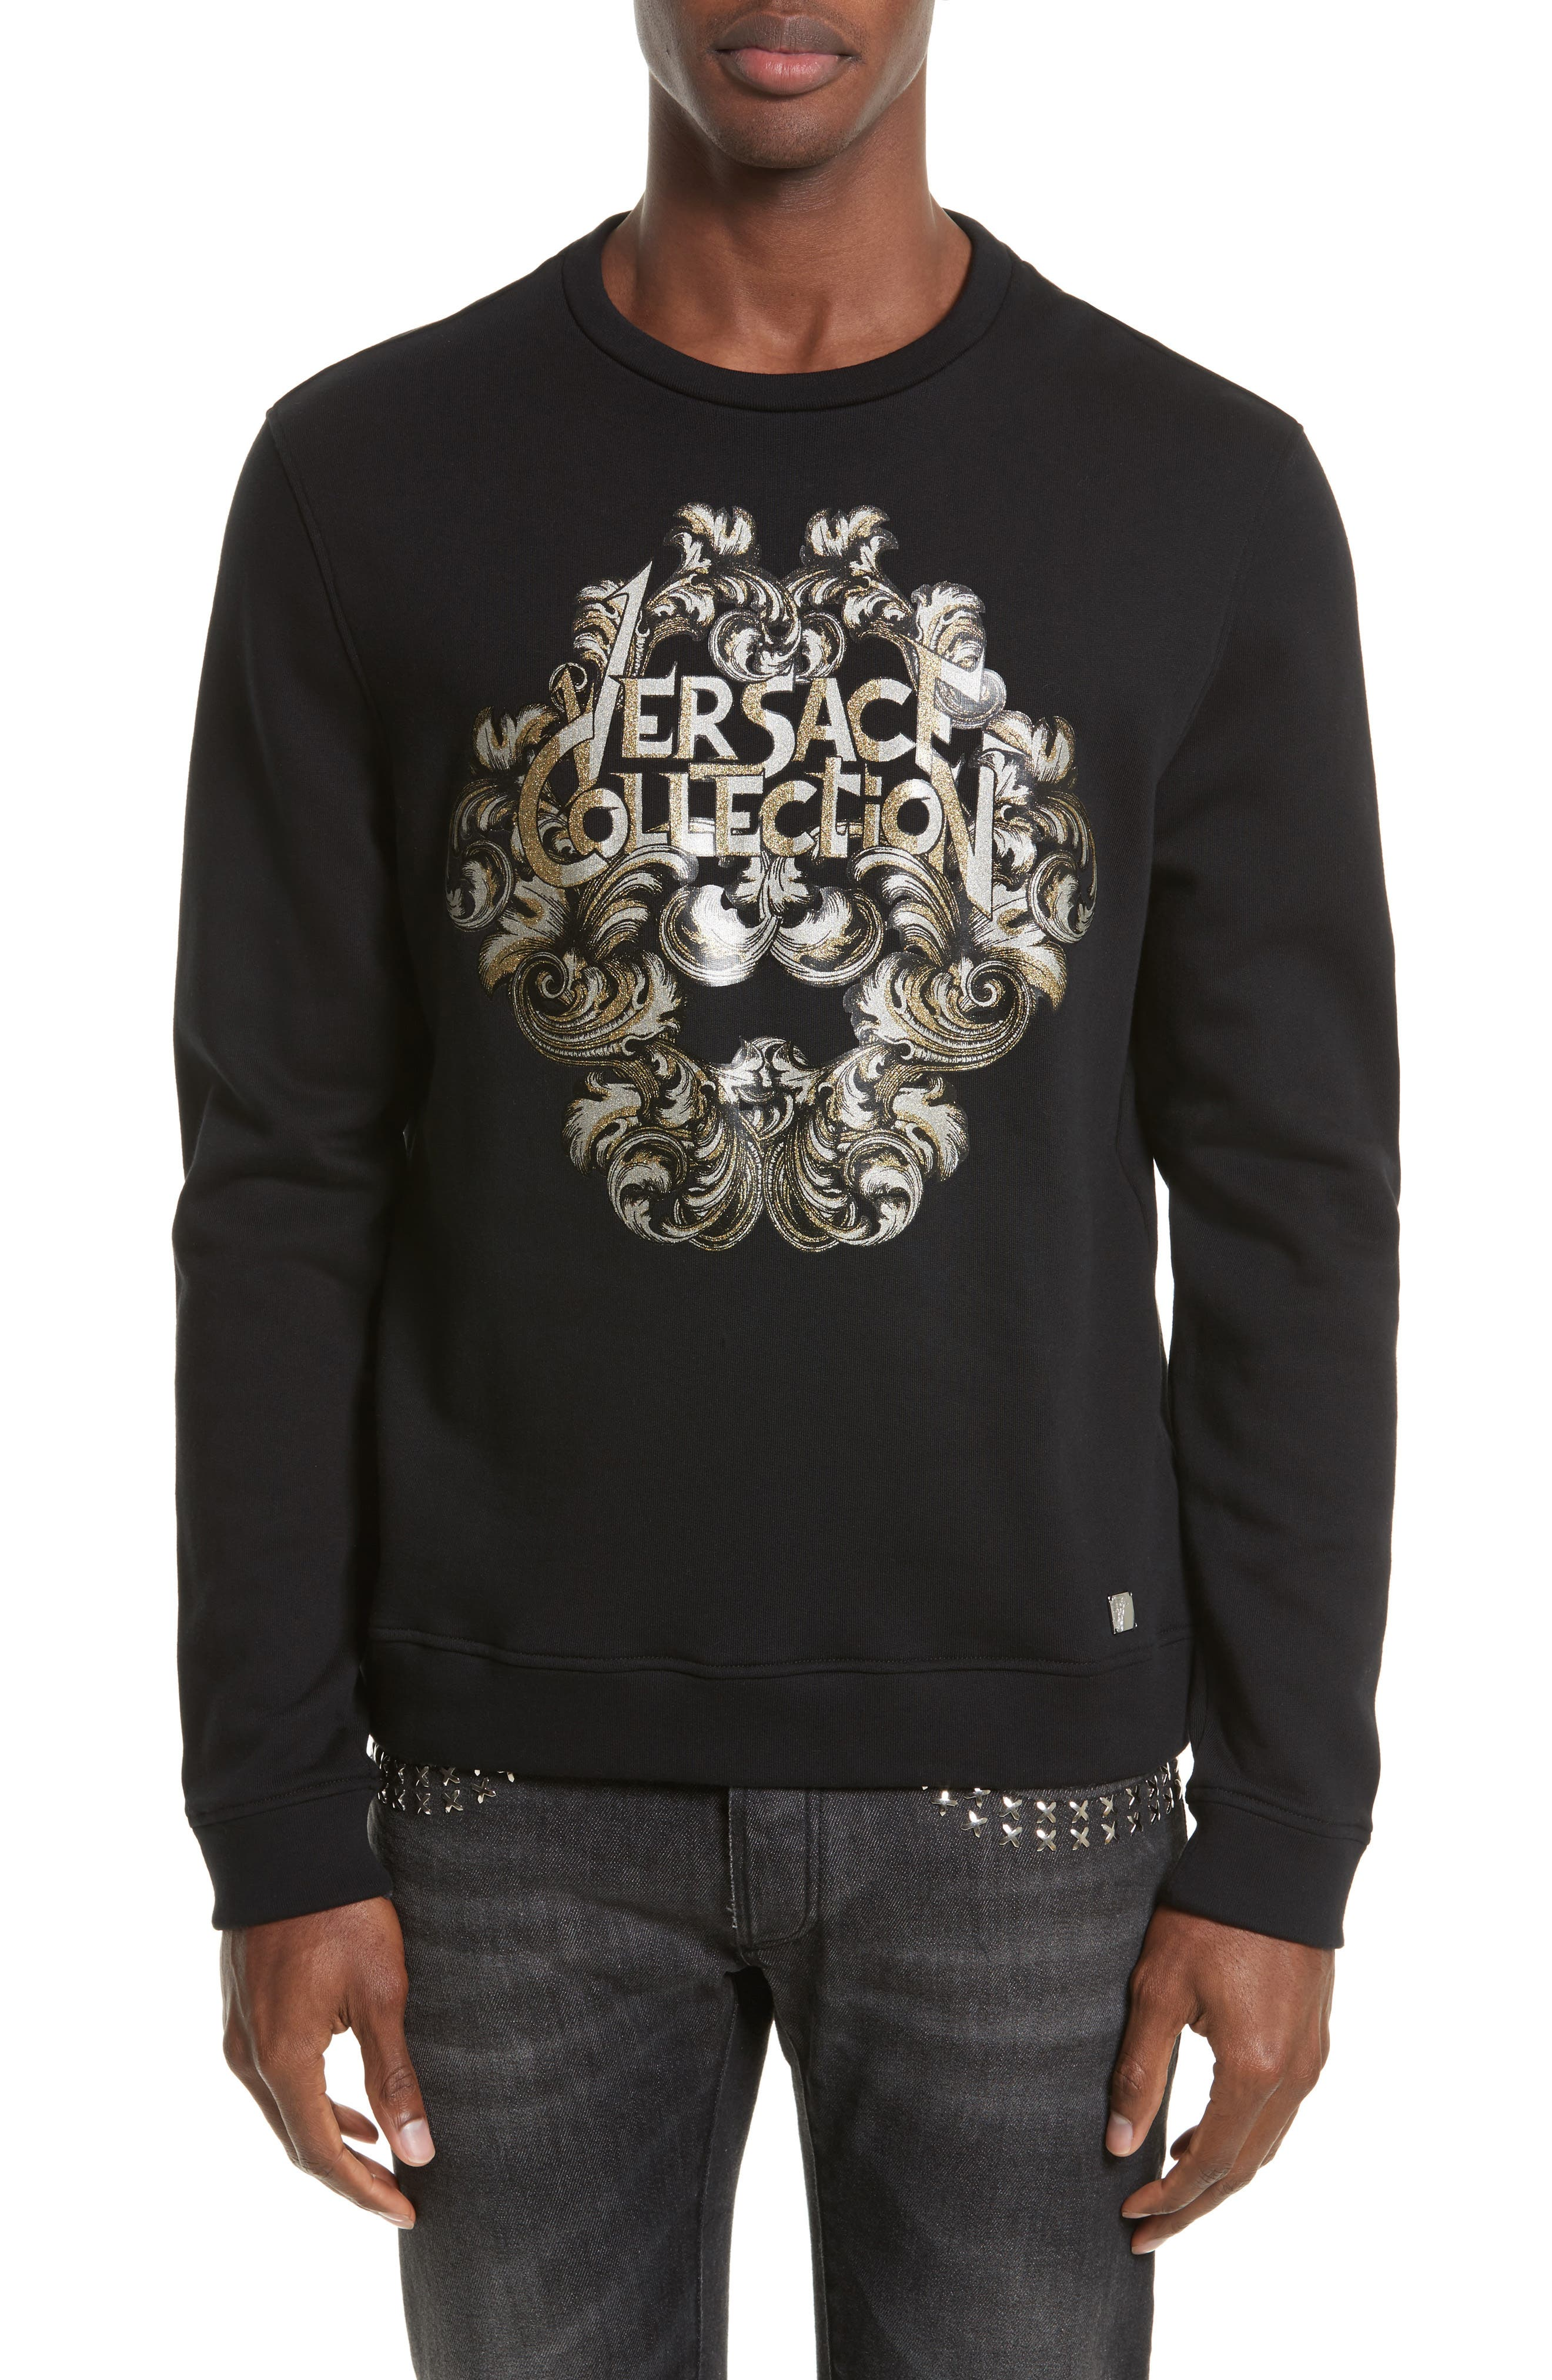 Versace Collection Corinthian Logo Graphic Sweatshirt